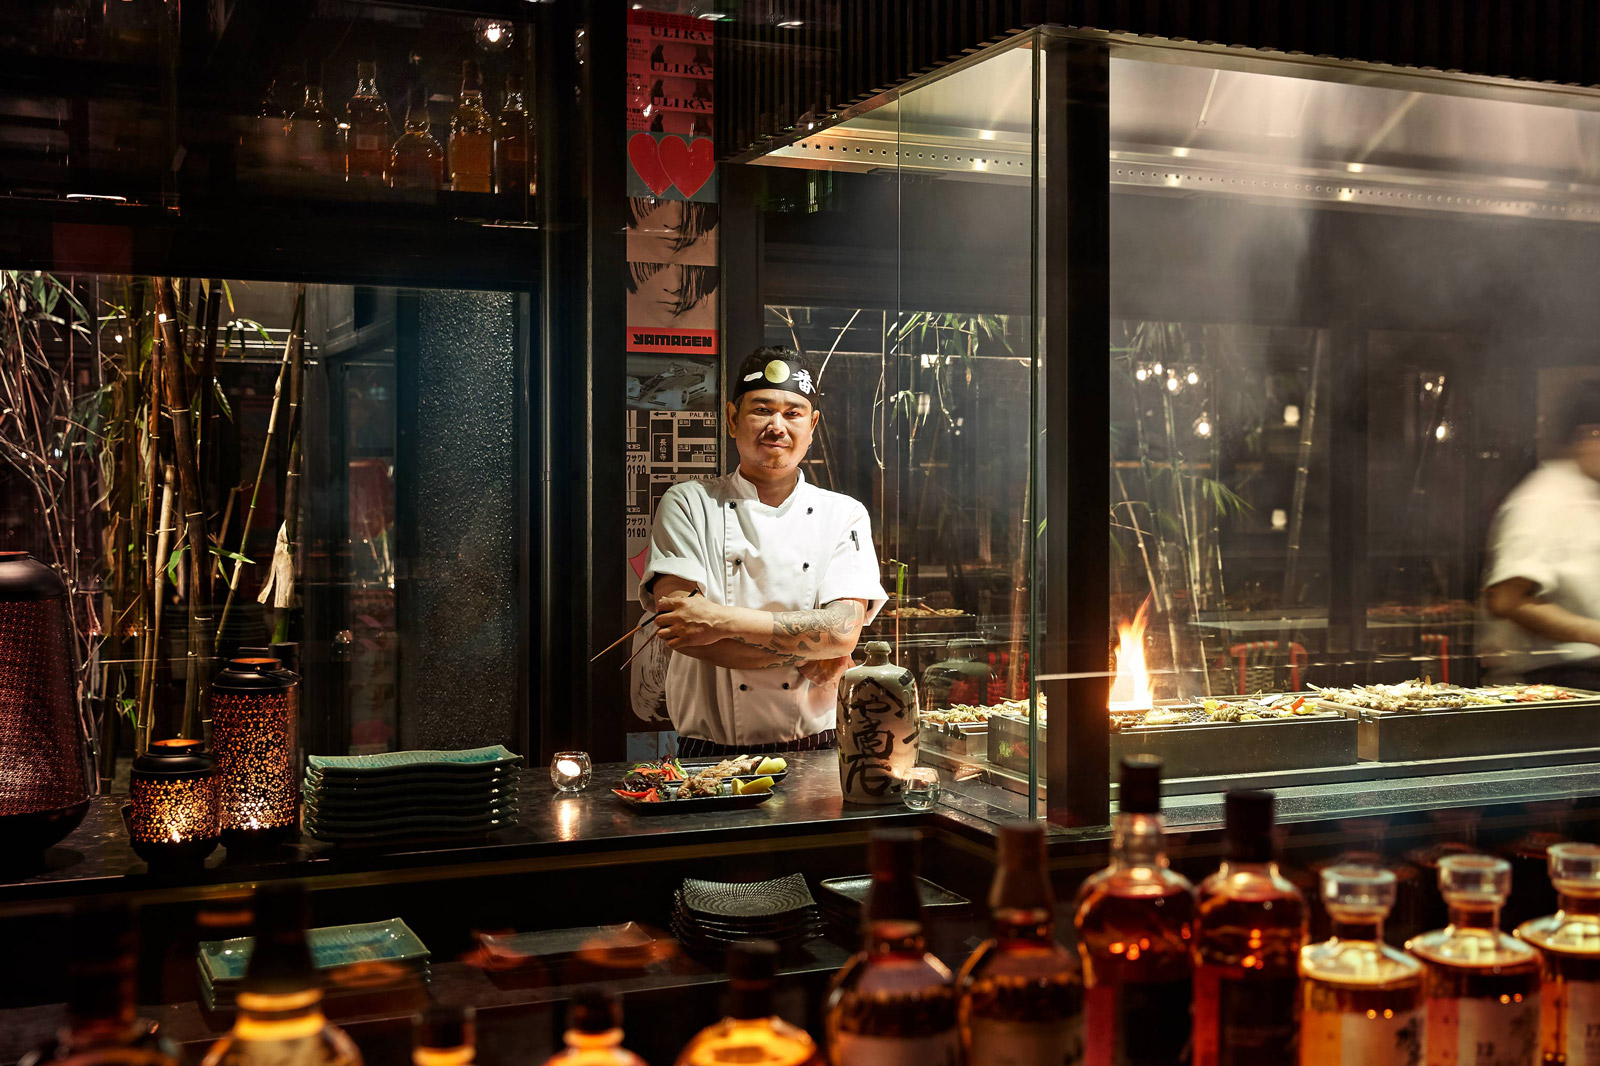 QT-Gold-Coast-Yamagen-Chef-and-plate.jpg